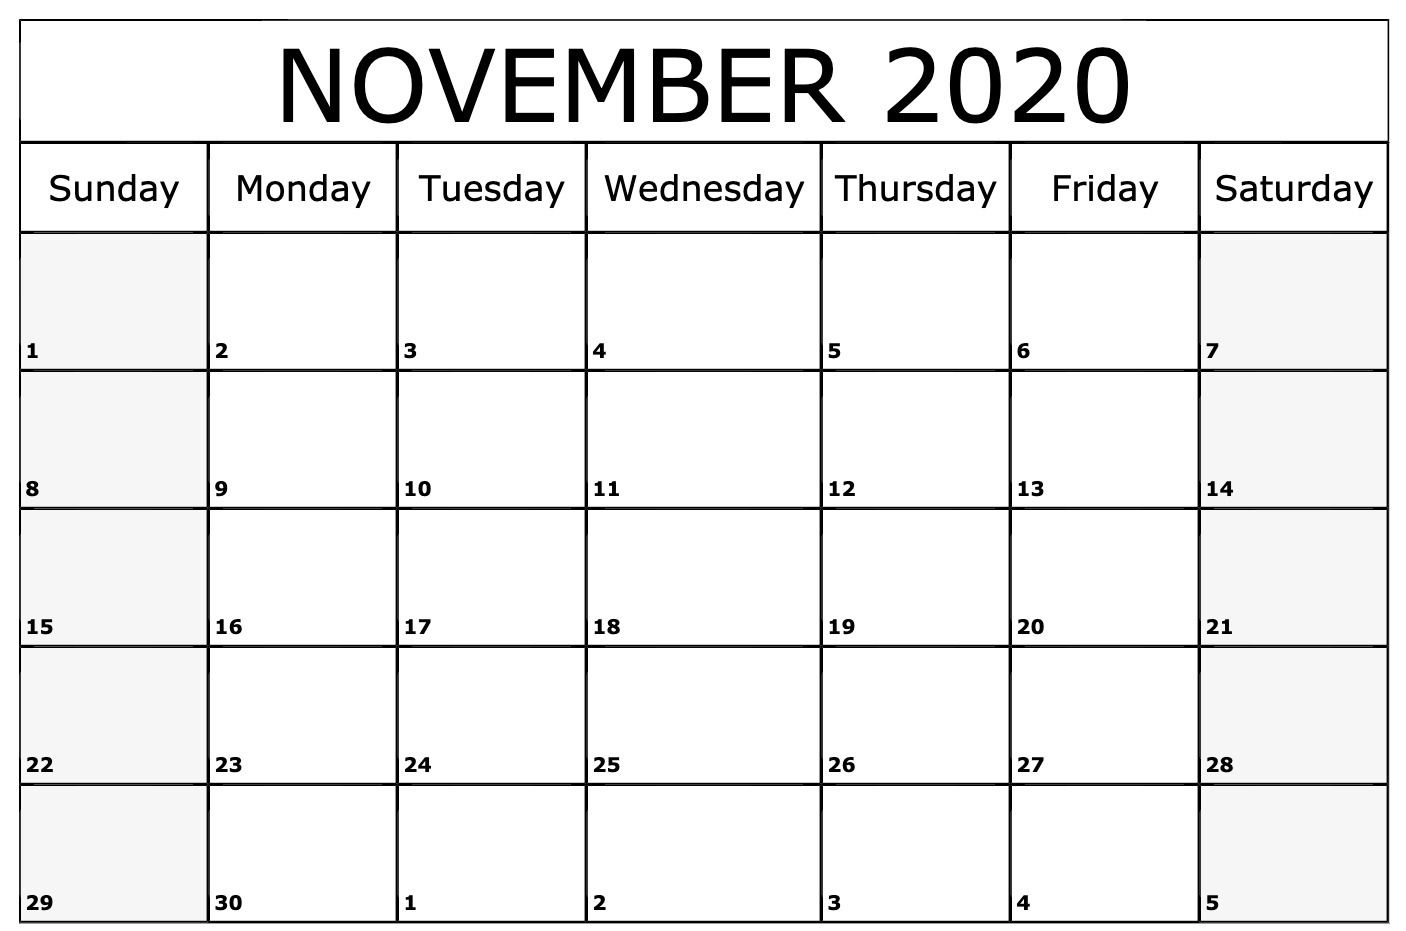 November 2020 Calendar Printable Template Monthly Calendar Template Monthly Calendar Printable Calendar Printables